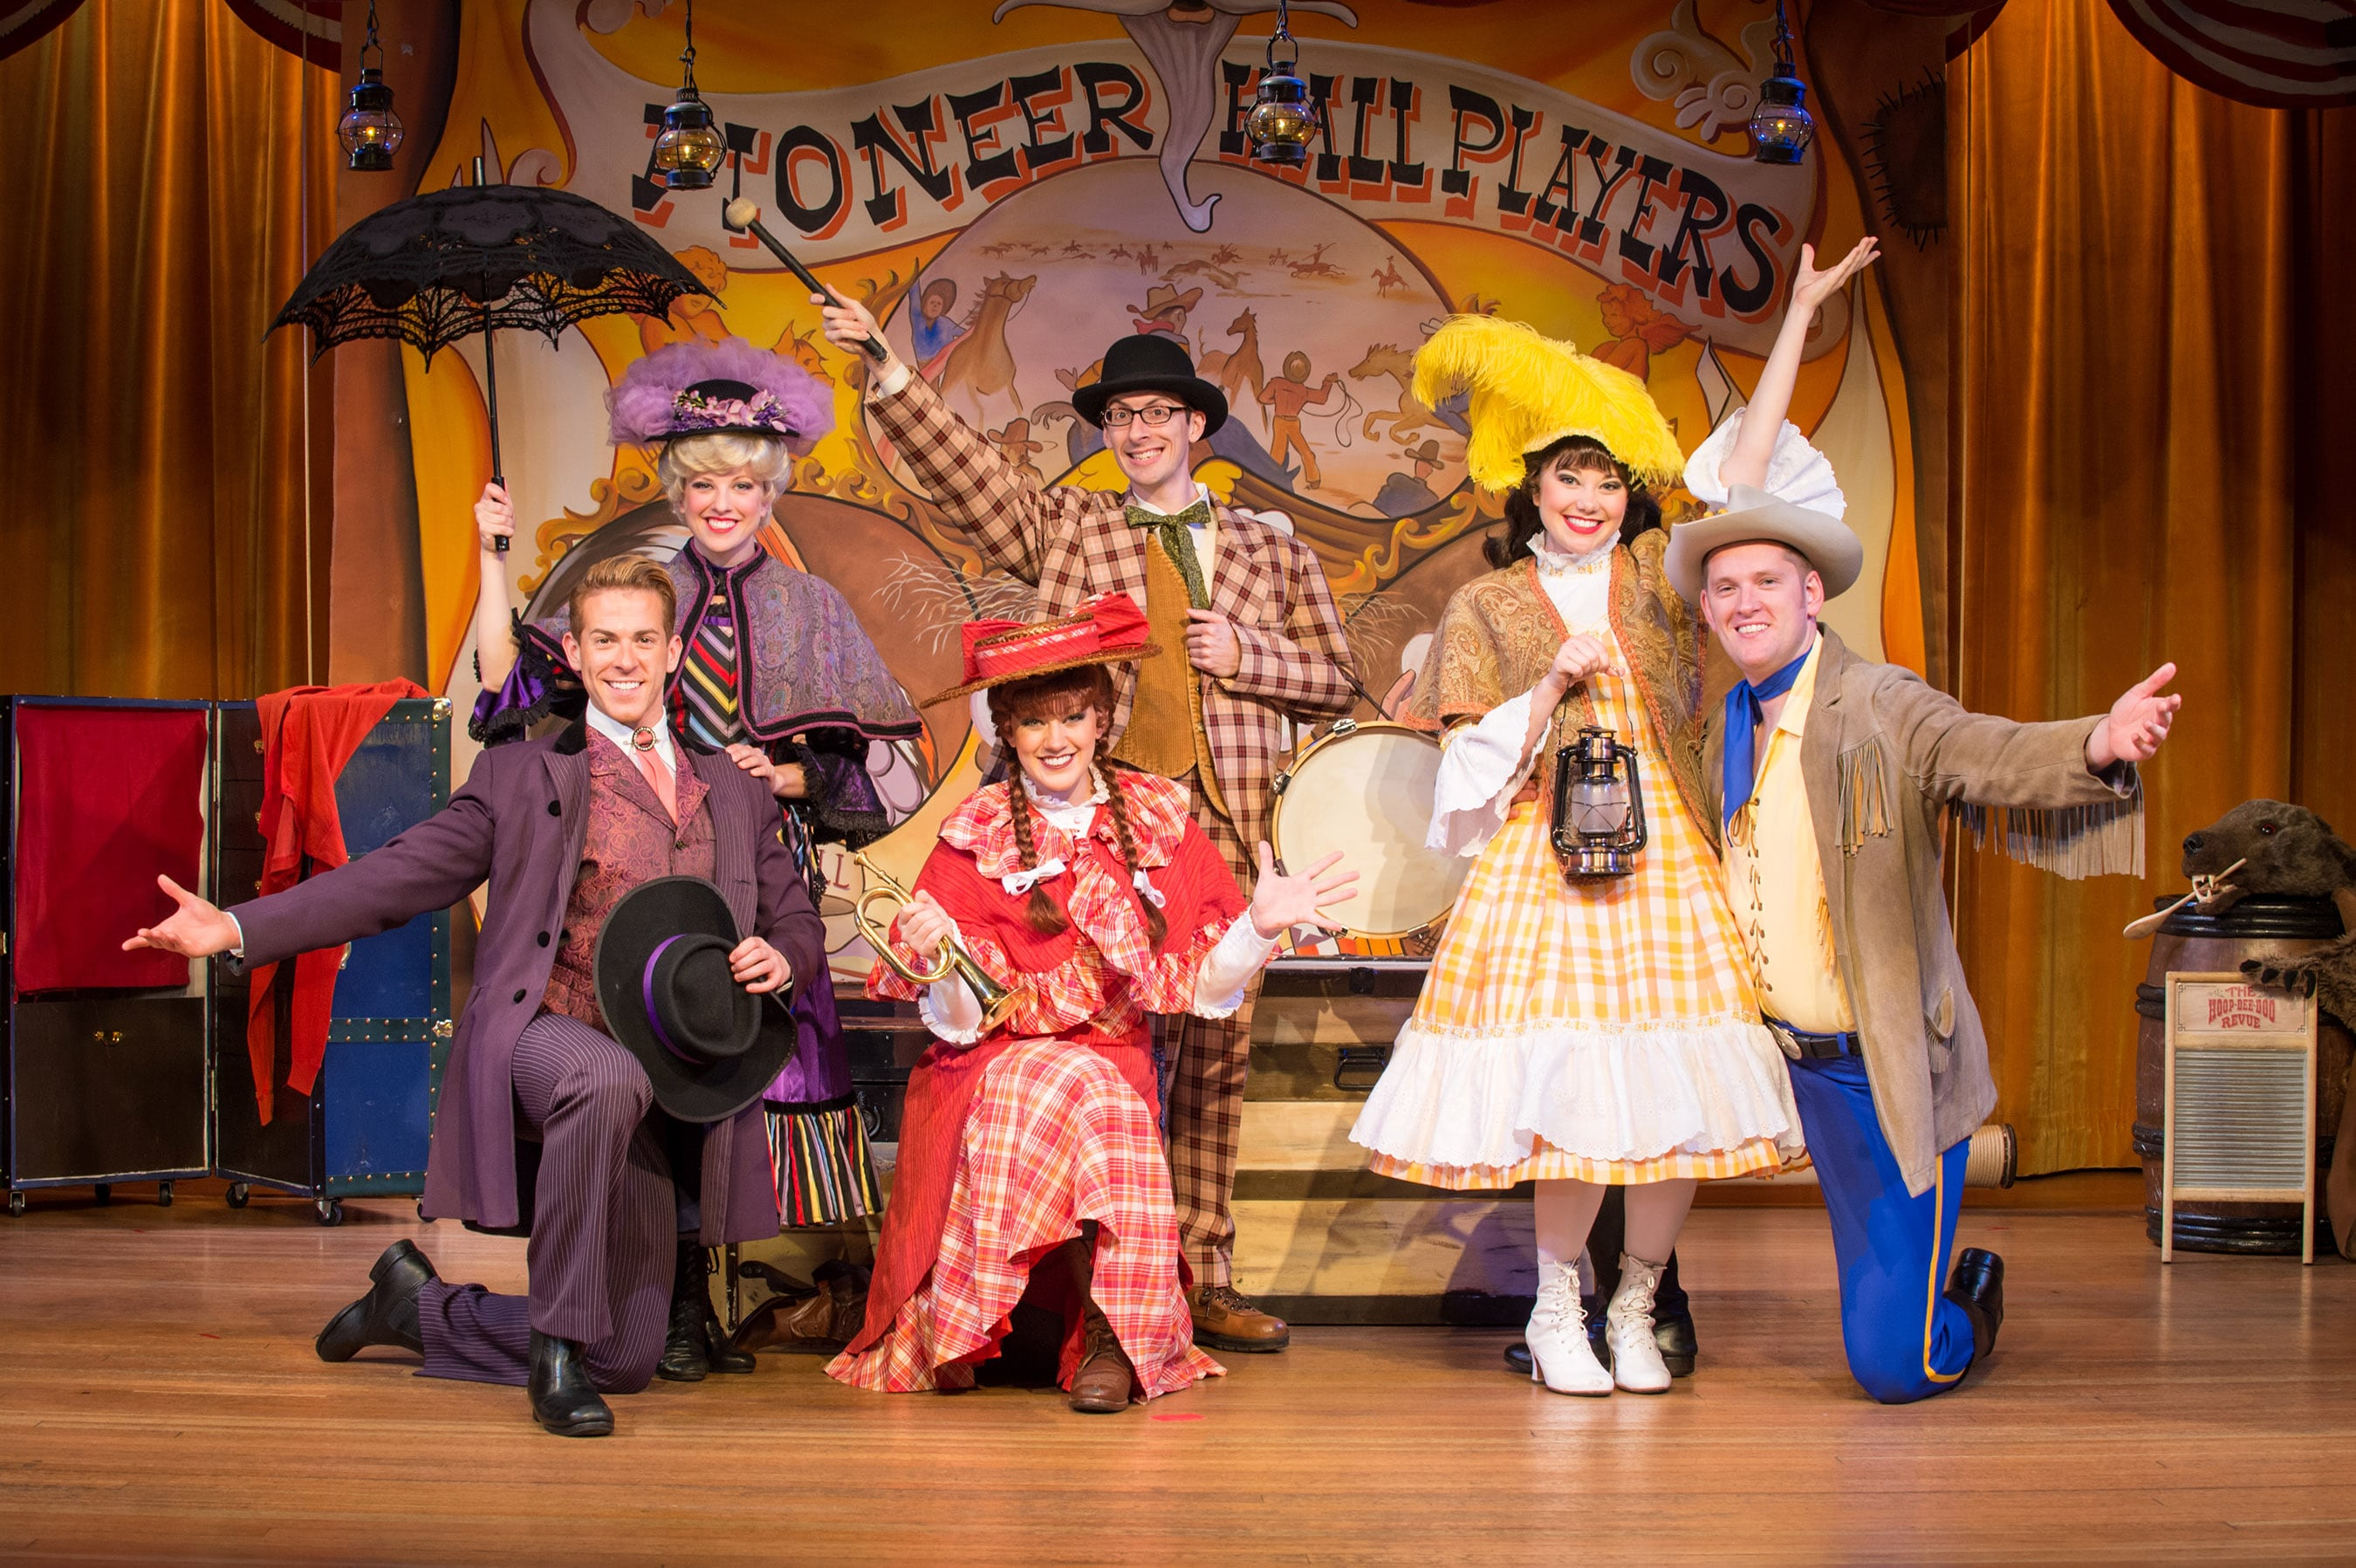 Hoop-Dee-Doo Musical Revue at Disney's Fort Wilderness